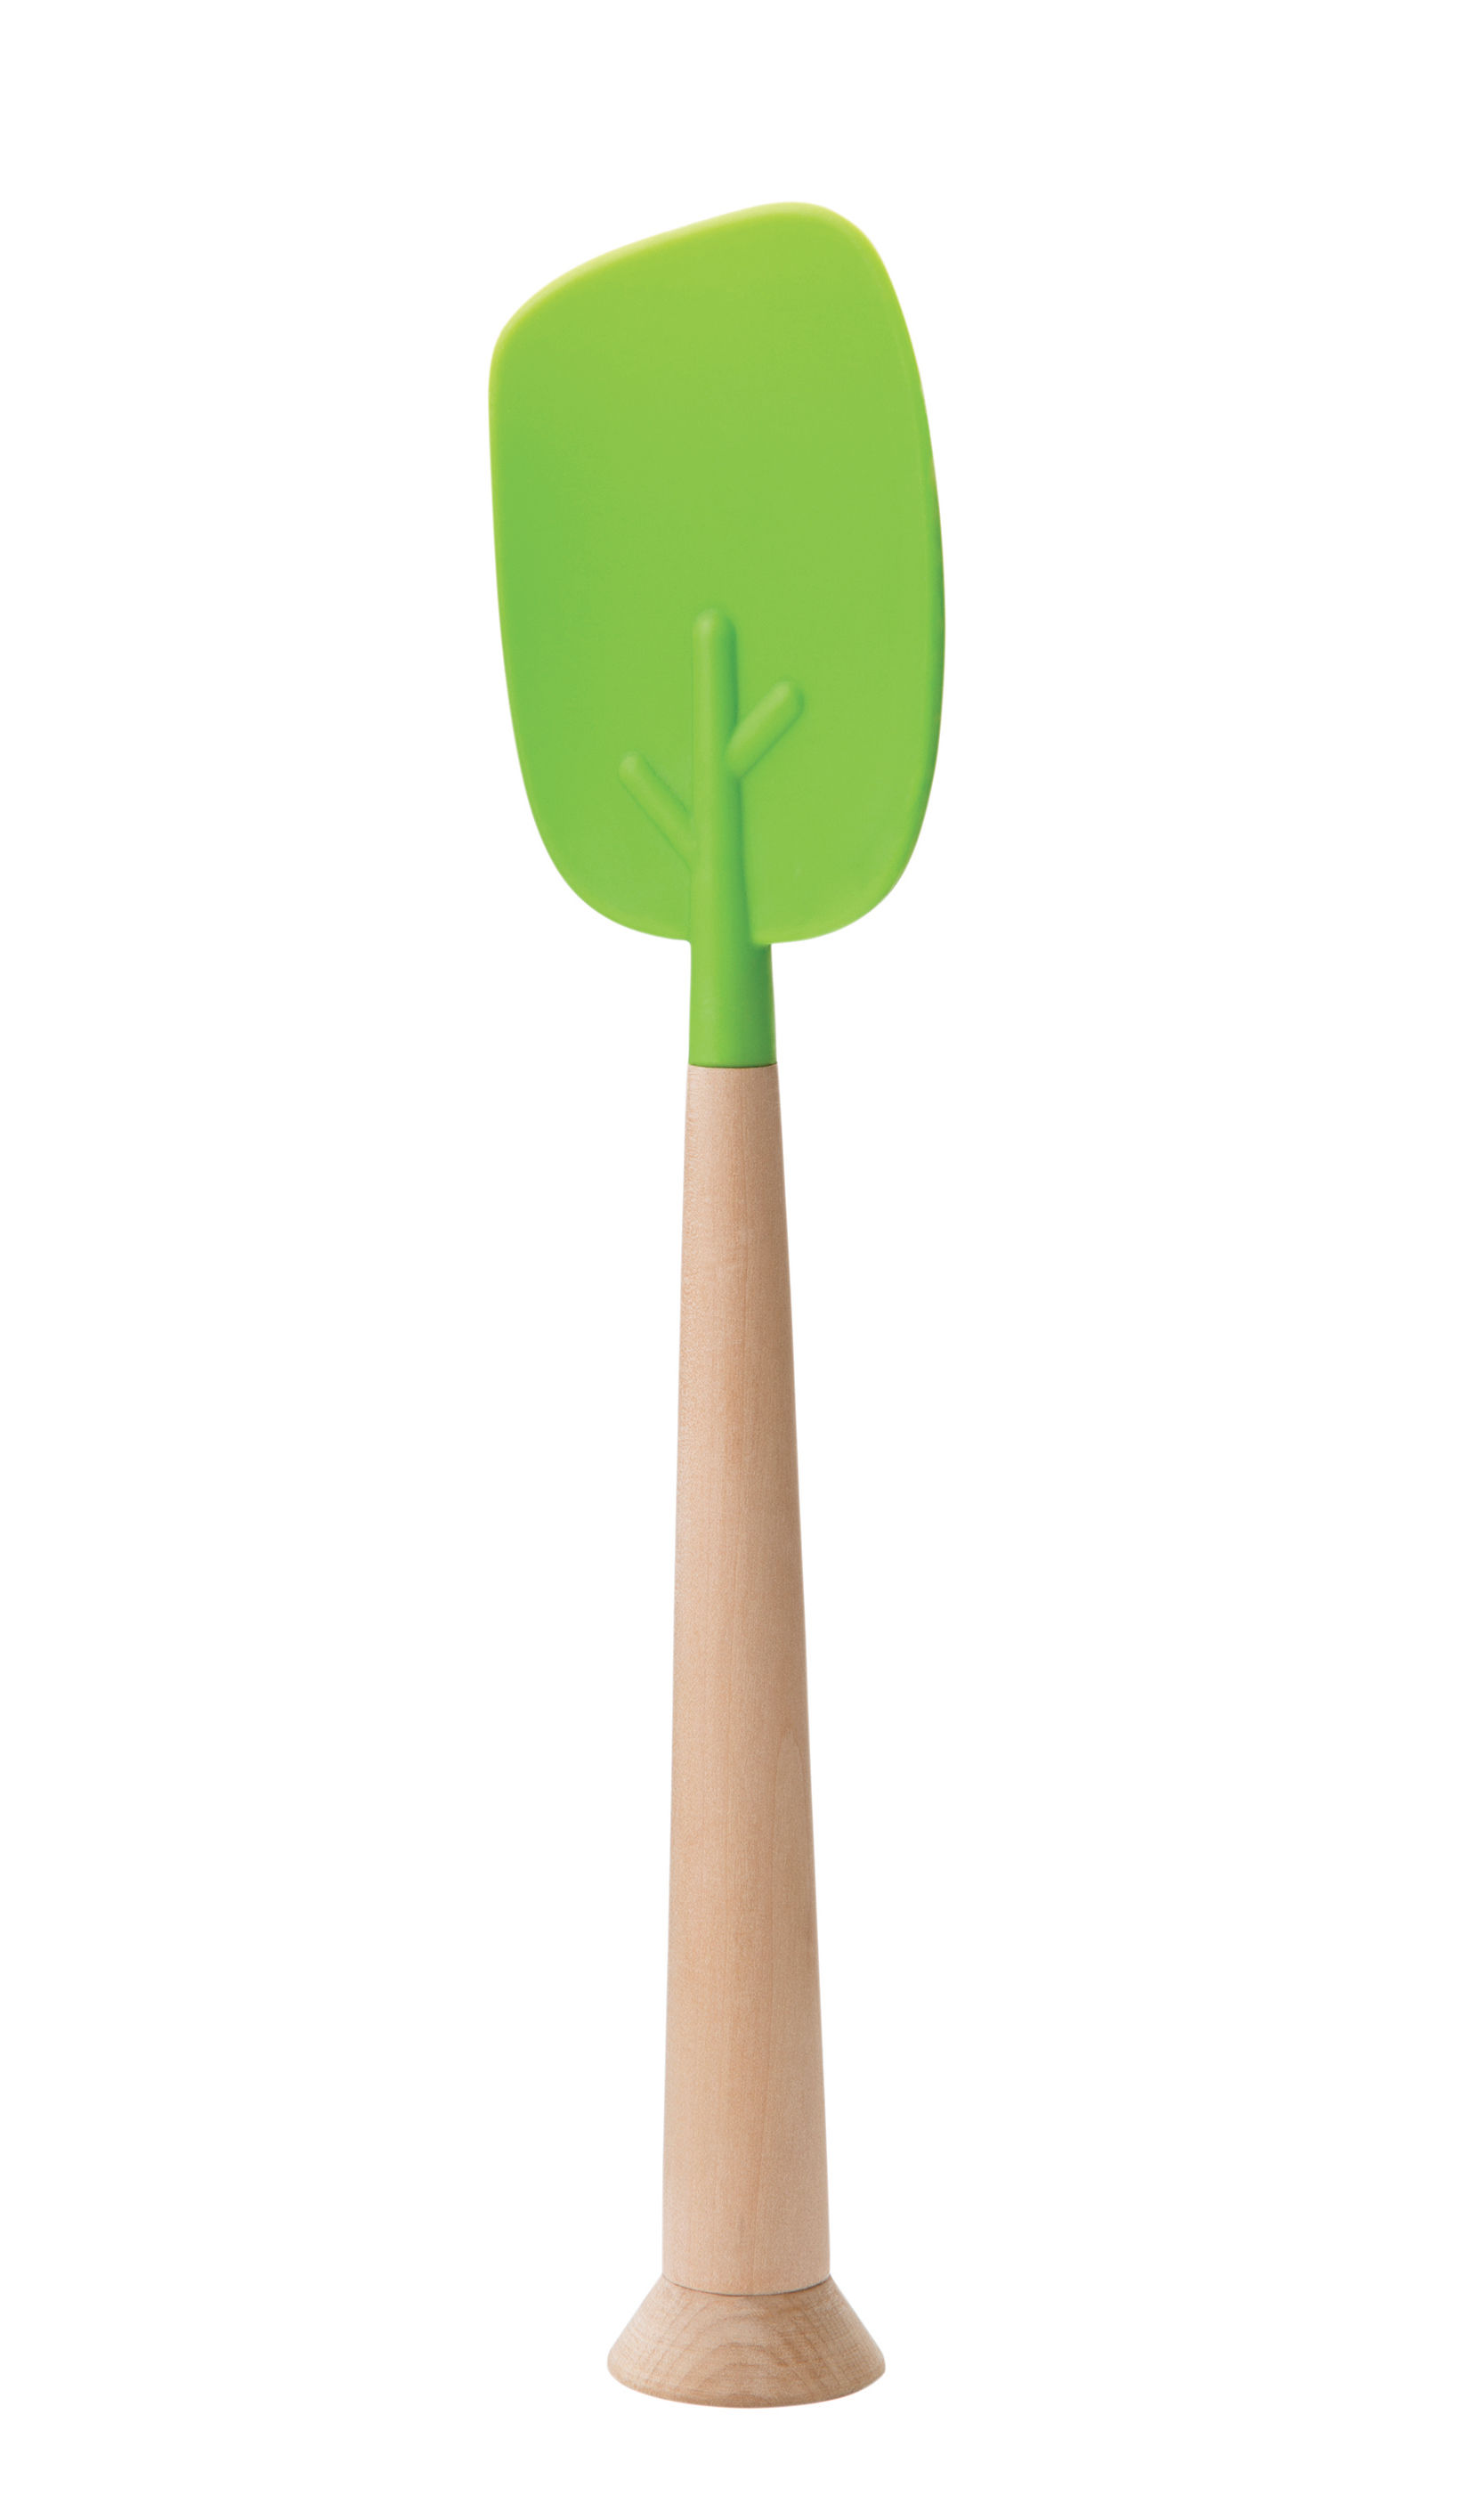 Kitchenware - Kitchen Equipment - Timber Spatula - / Silicon & wood by Pa Design - Green & wood - Silicone, Wood